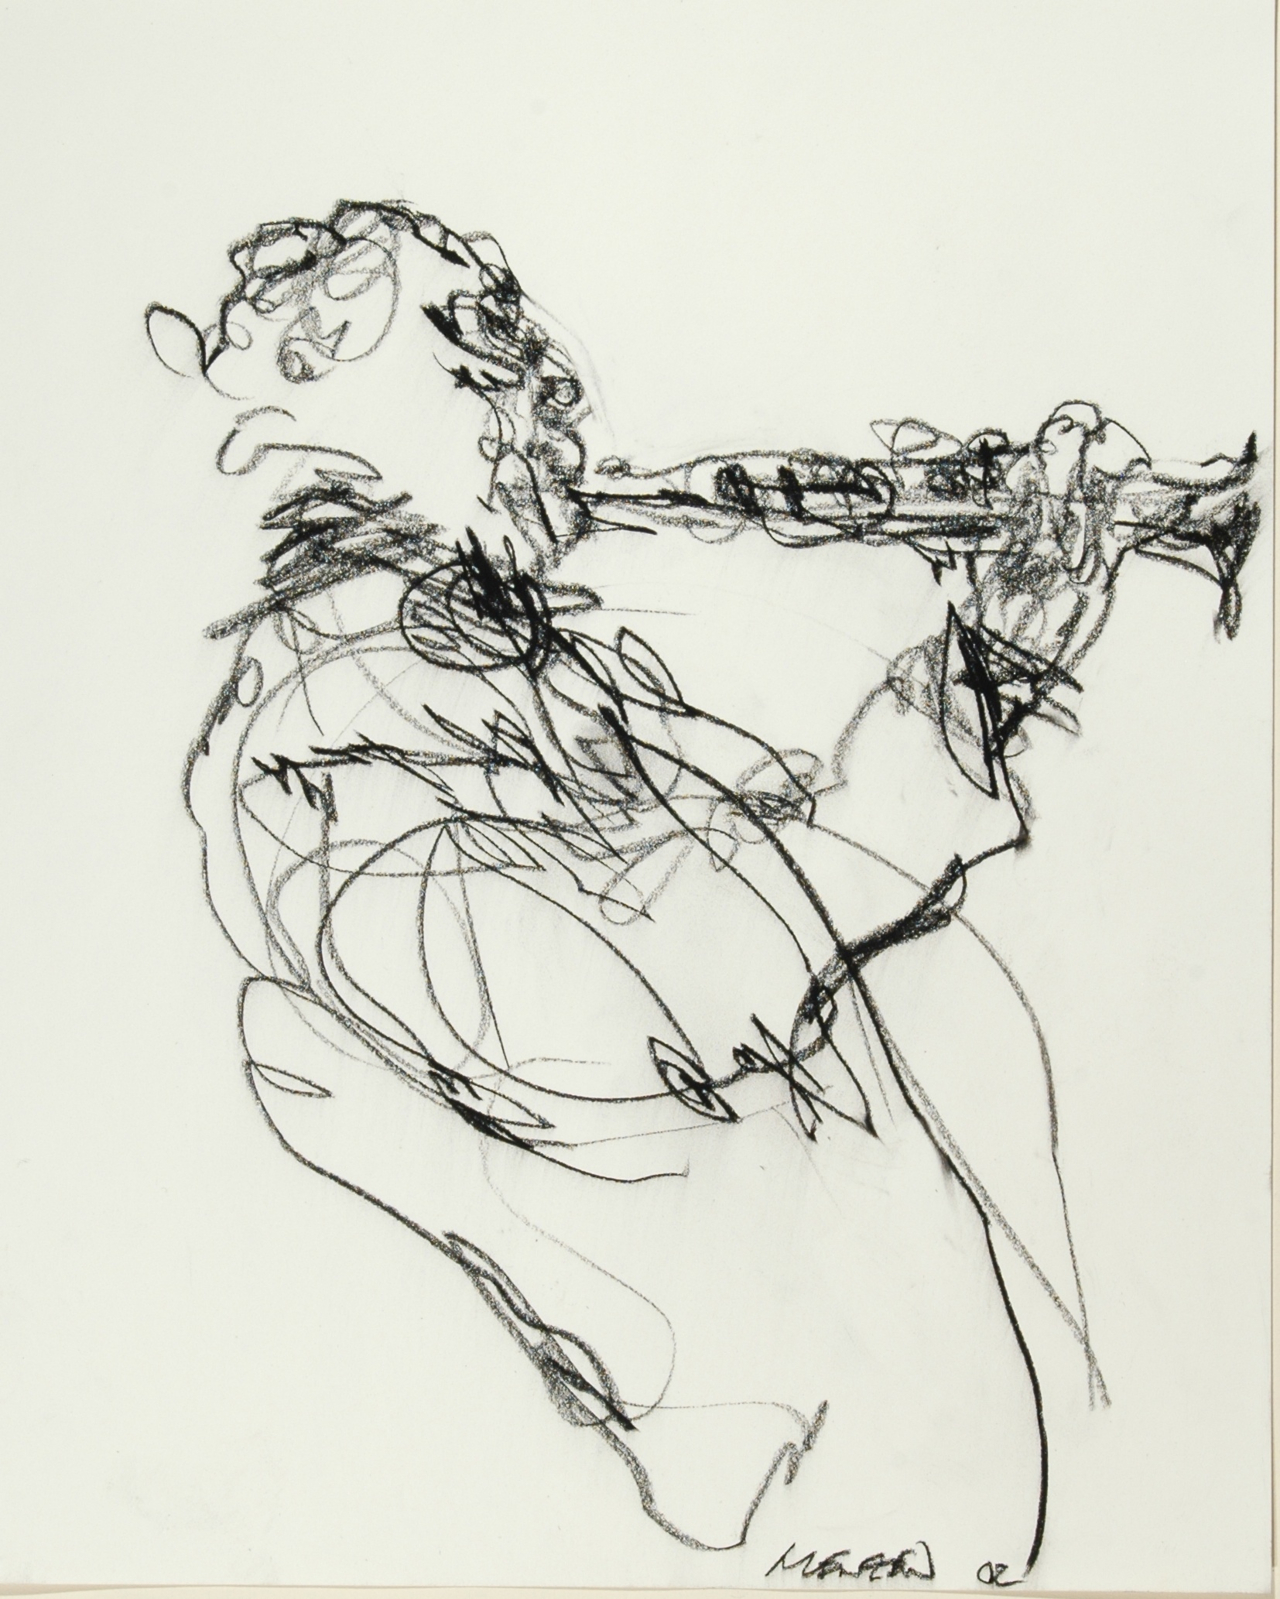 1280x1599 Clarinet Jazz Musician In The Subway, Nyc. By Gregory Muenzen My